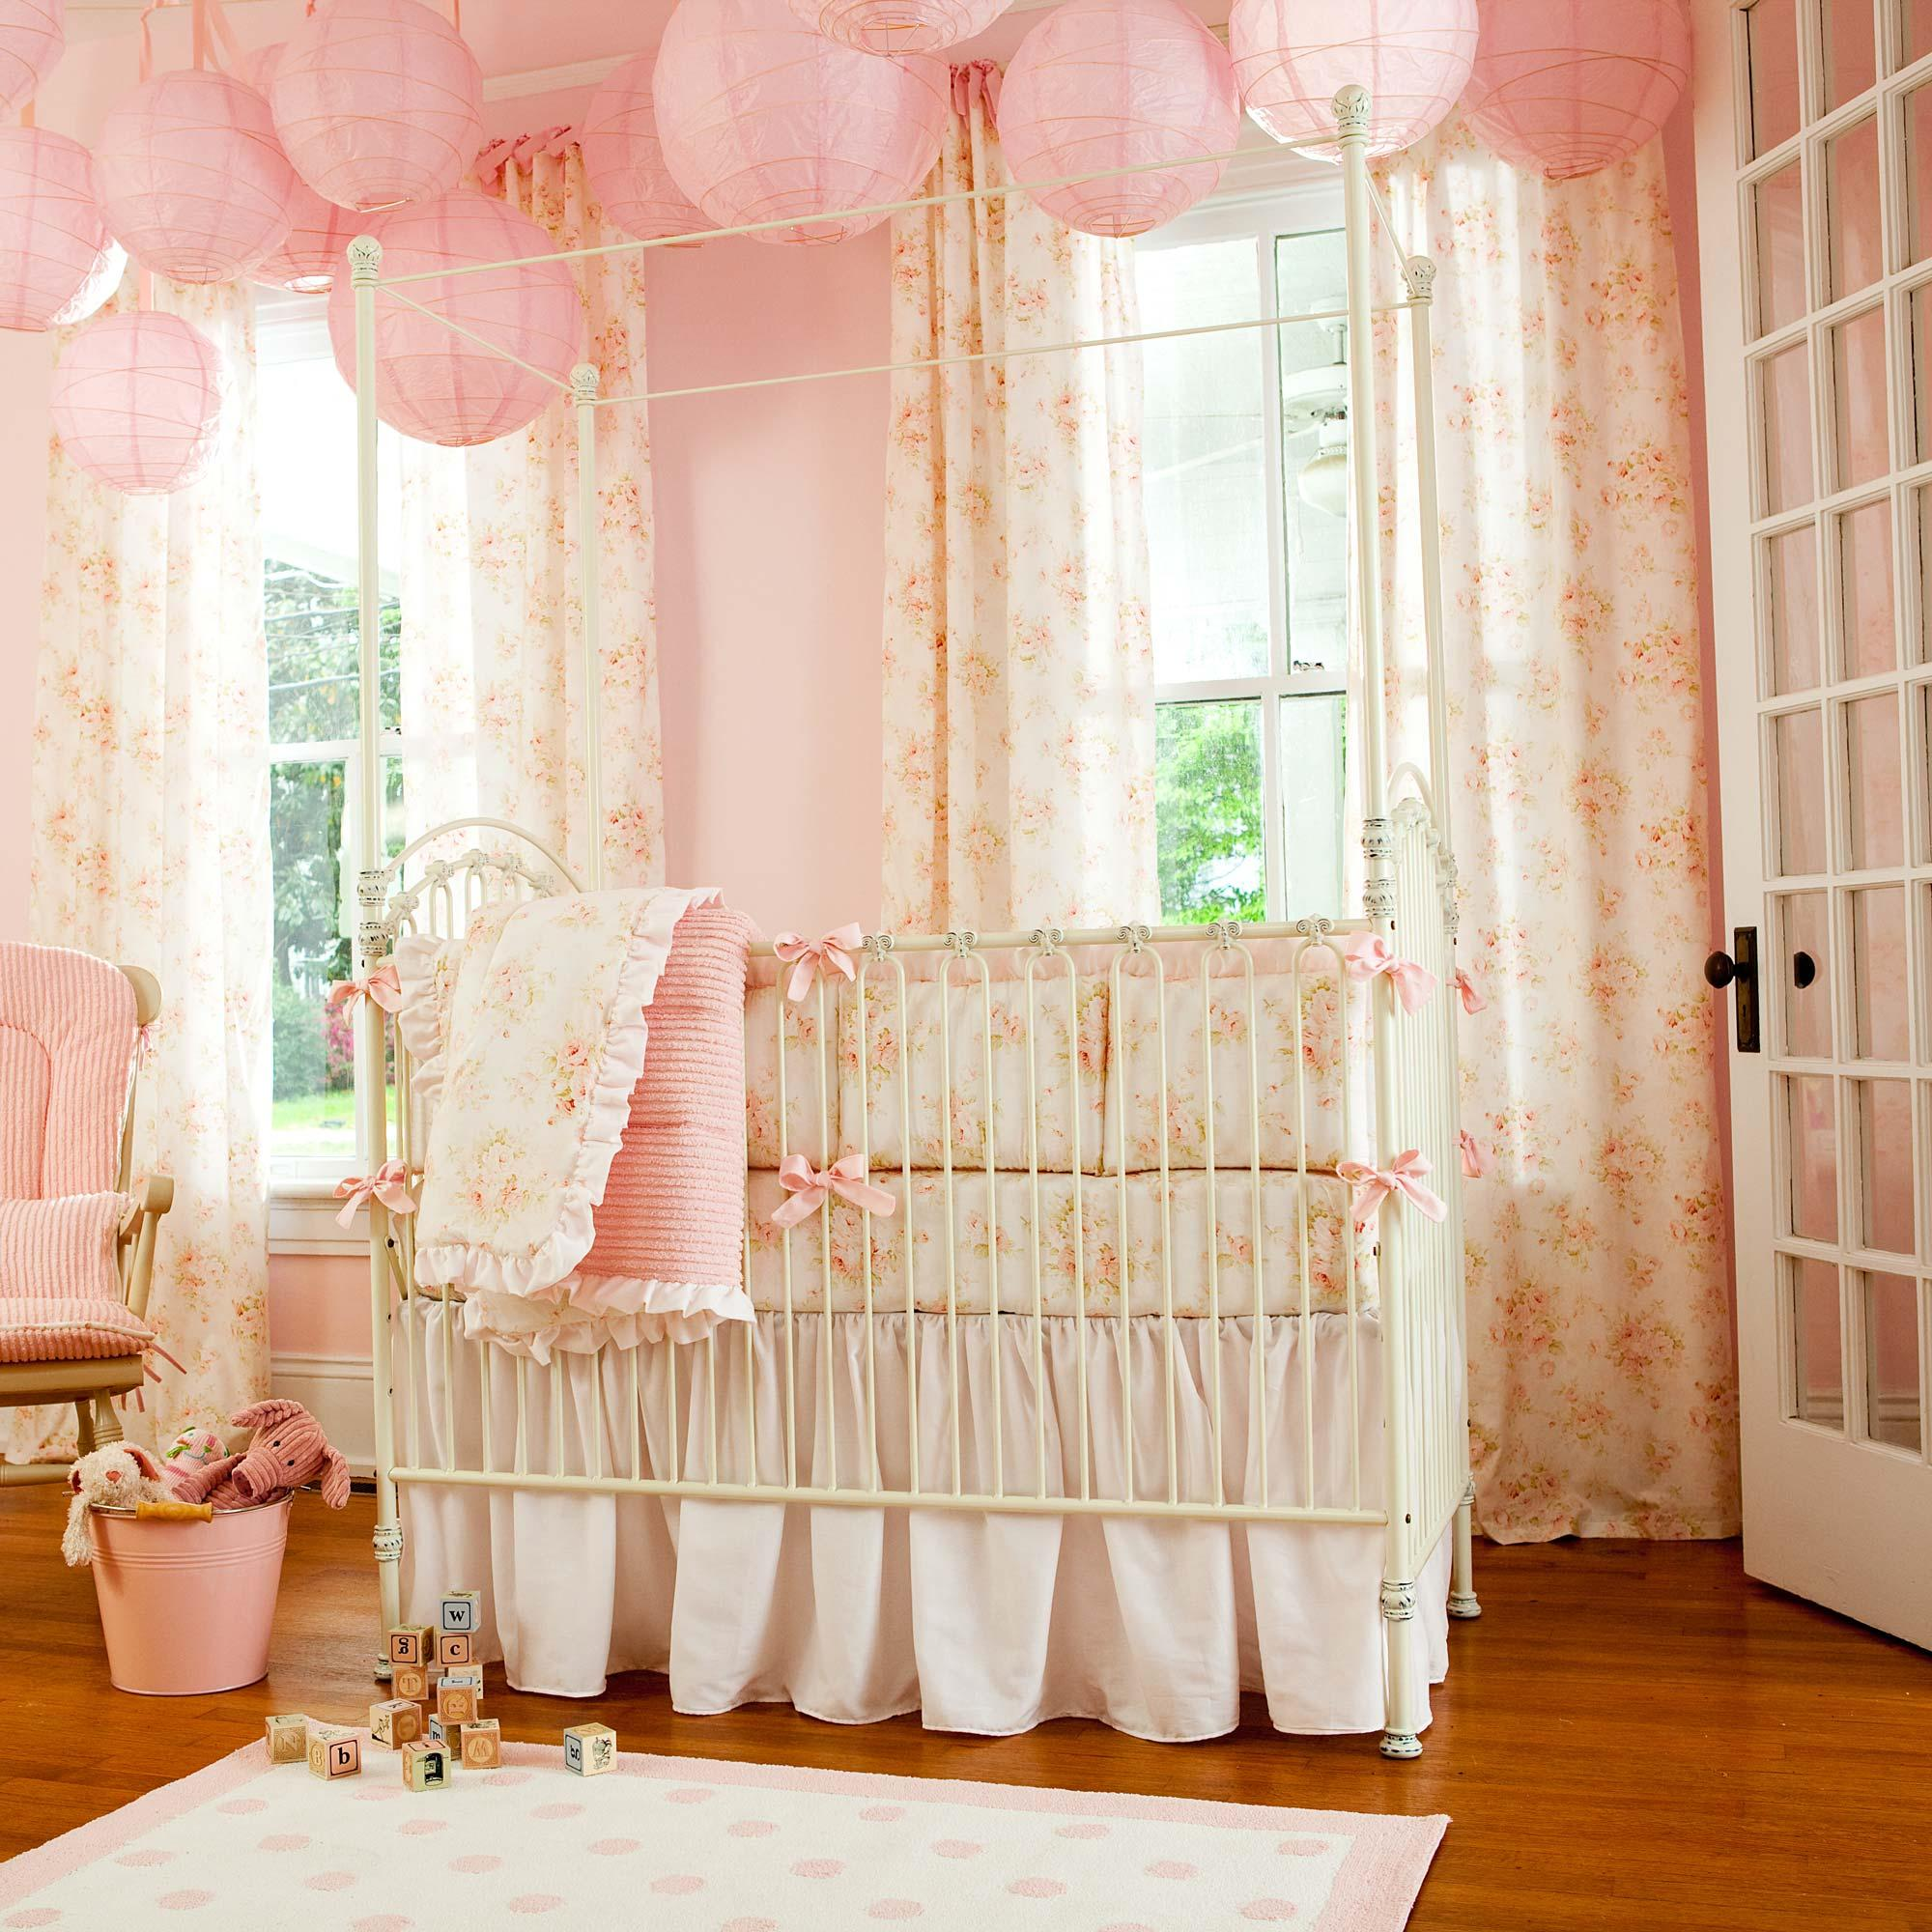 Things to consider before purchasing Baby girl bedding